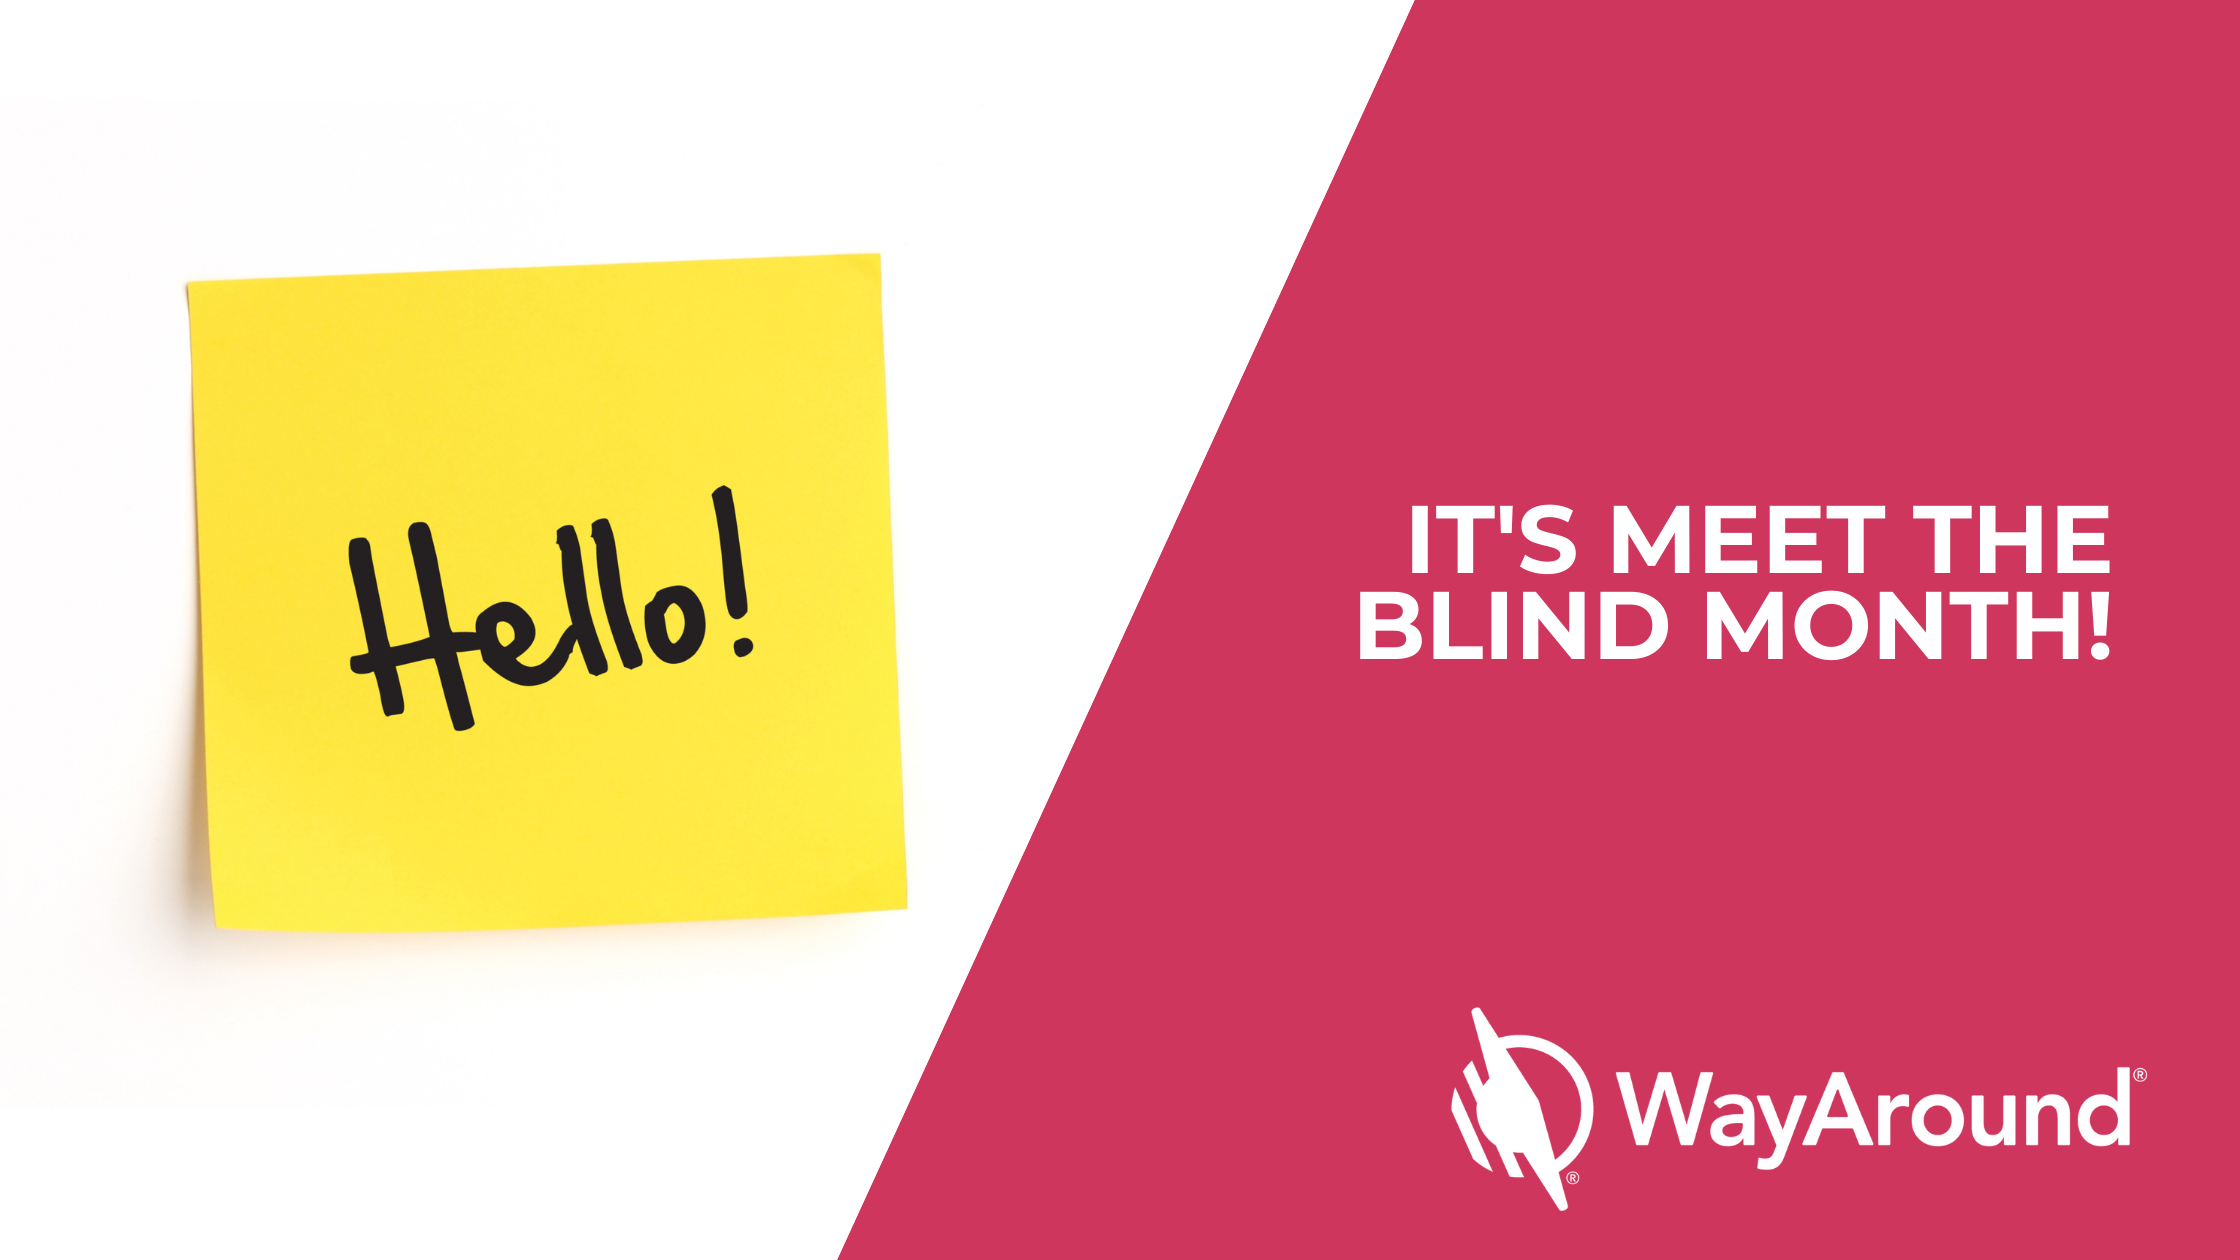 The left side has a yellow sticky note with the word Hello handwritten. The right side of the image says It's Meet the Blind Month! The WayAround logo is at the bottom.